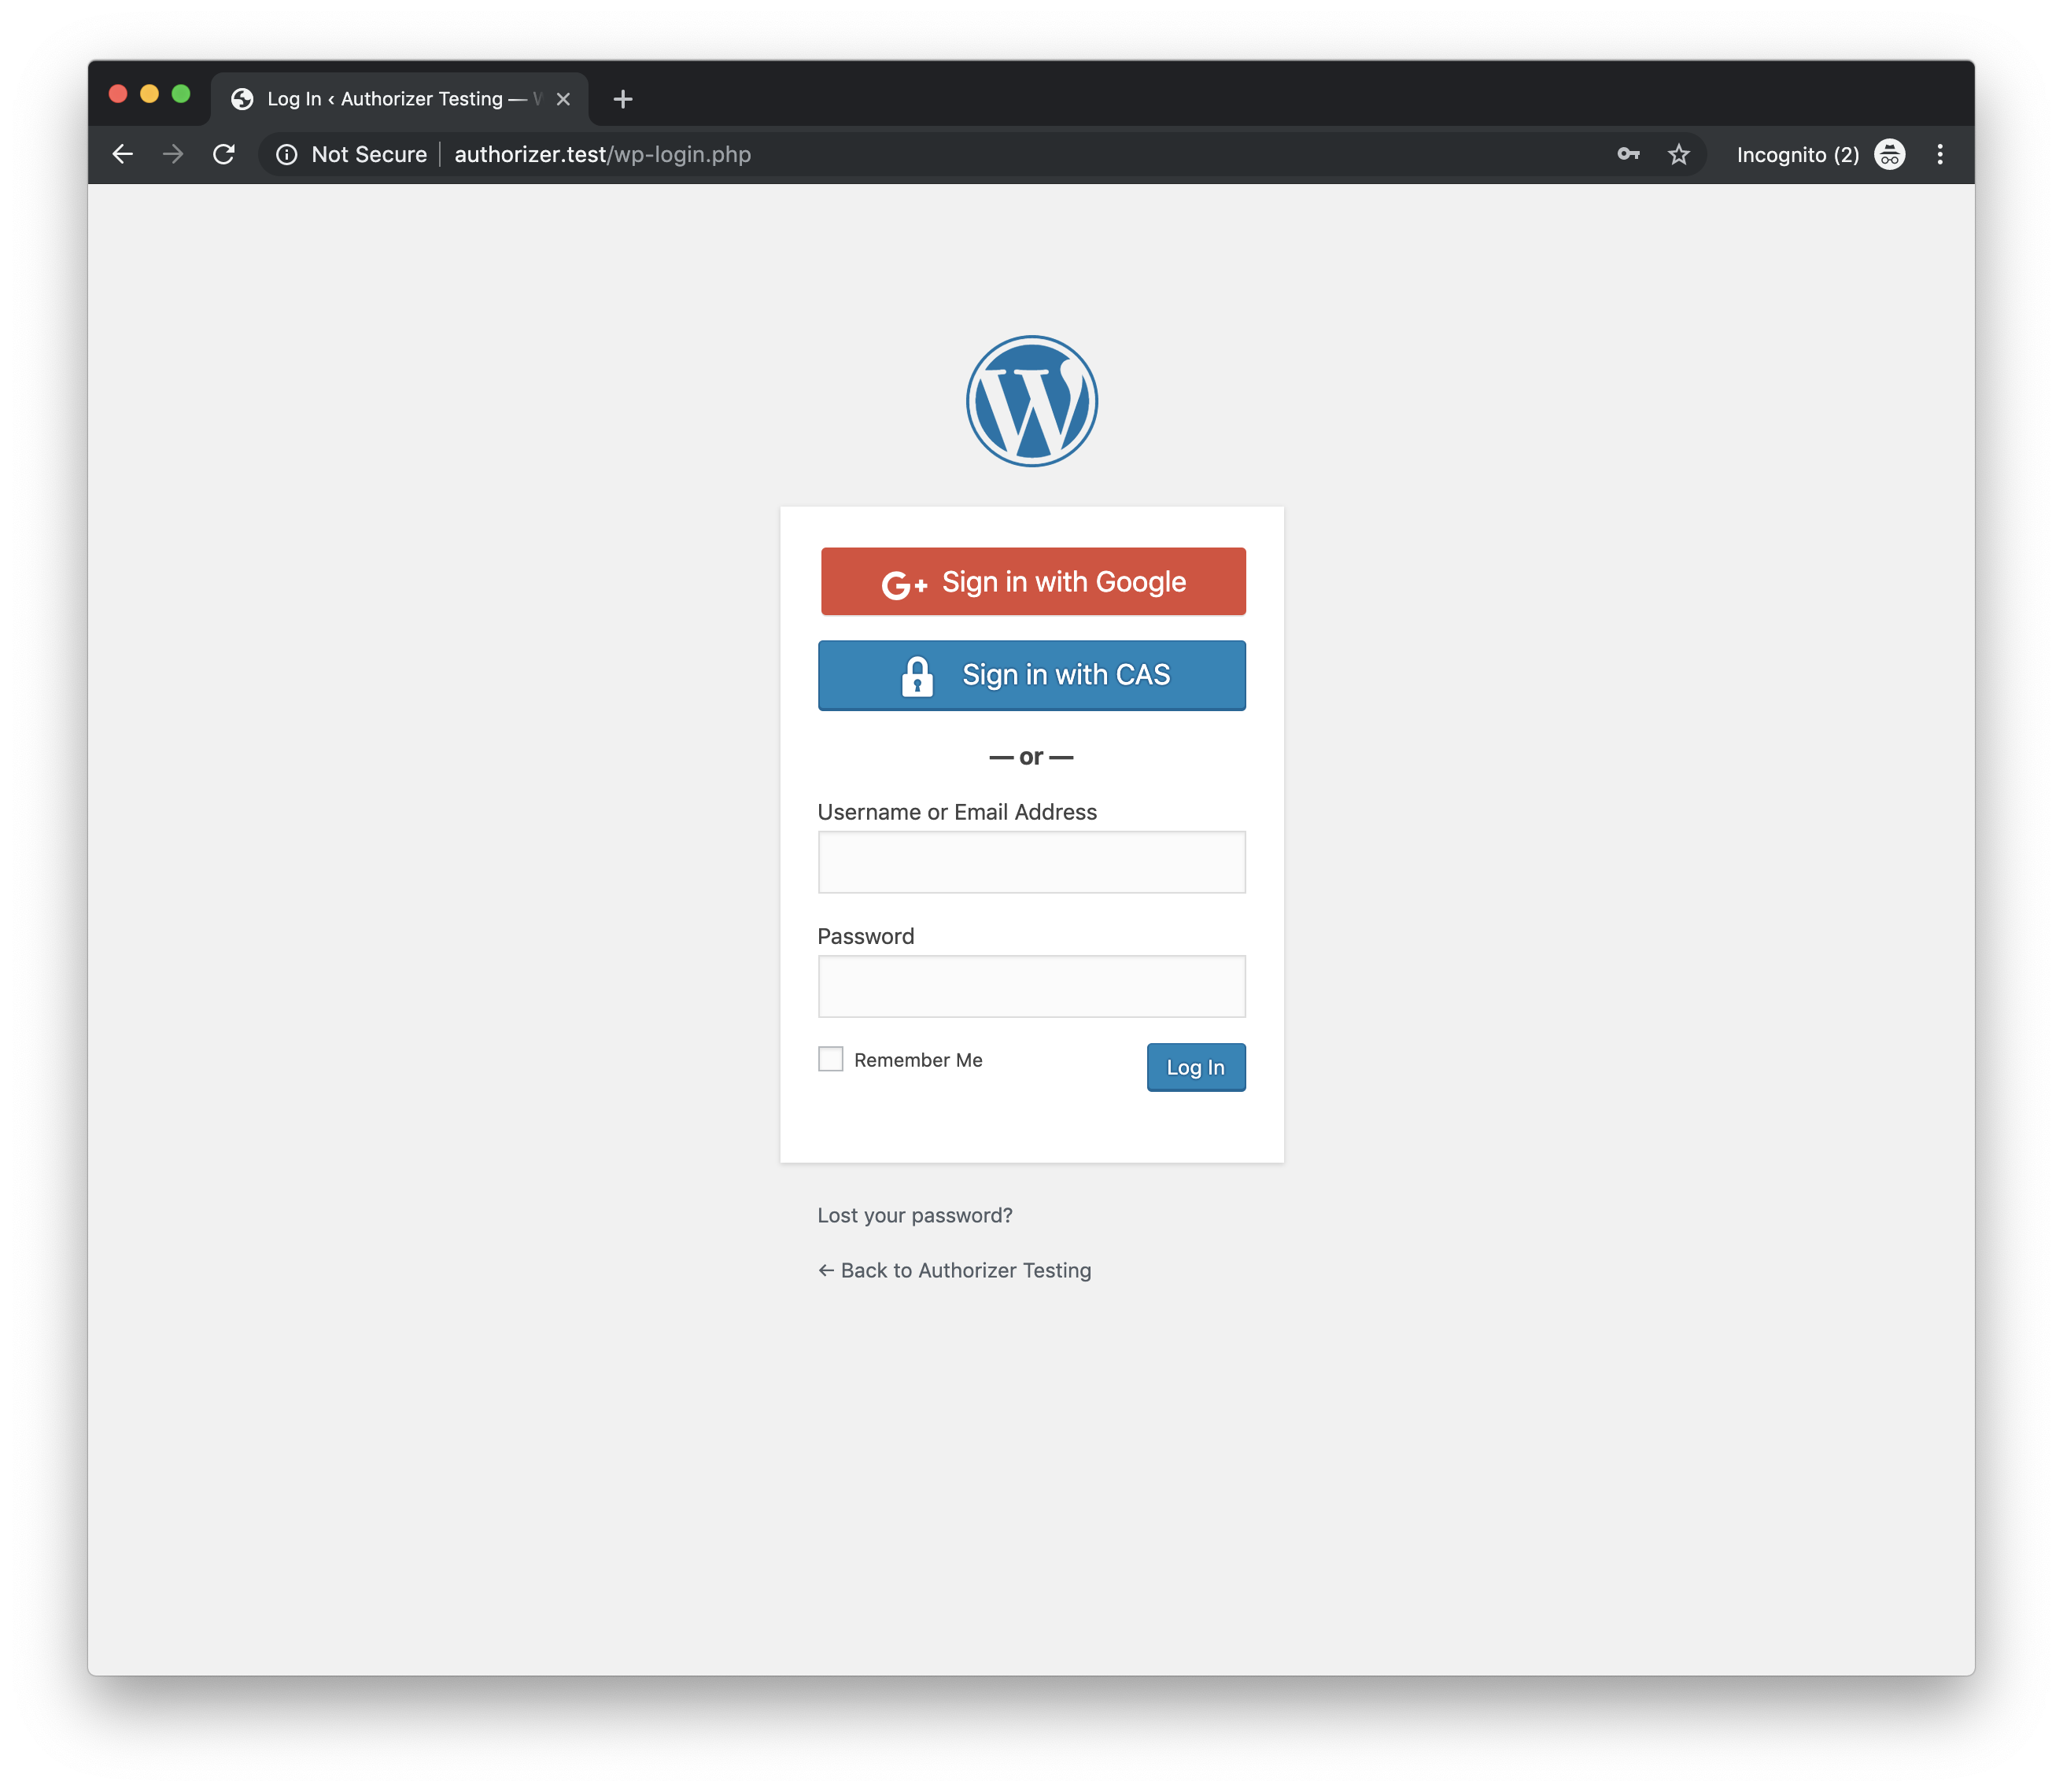 WordPress Login screen with Google Logins and CAS Logins enabled.